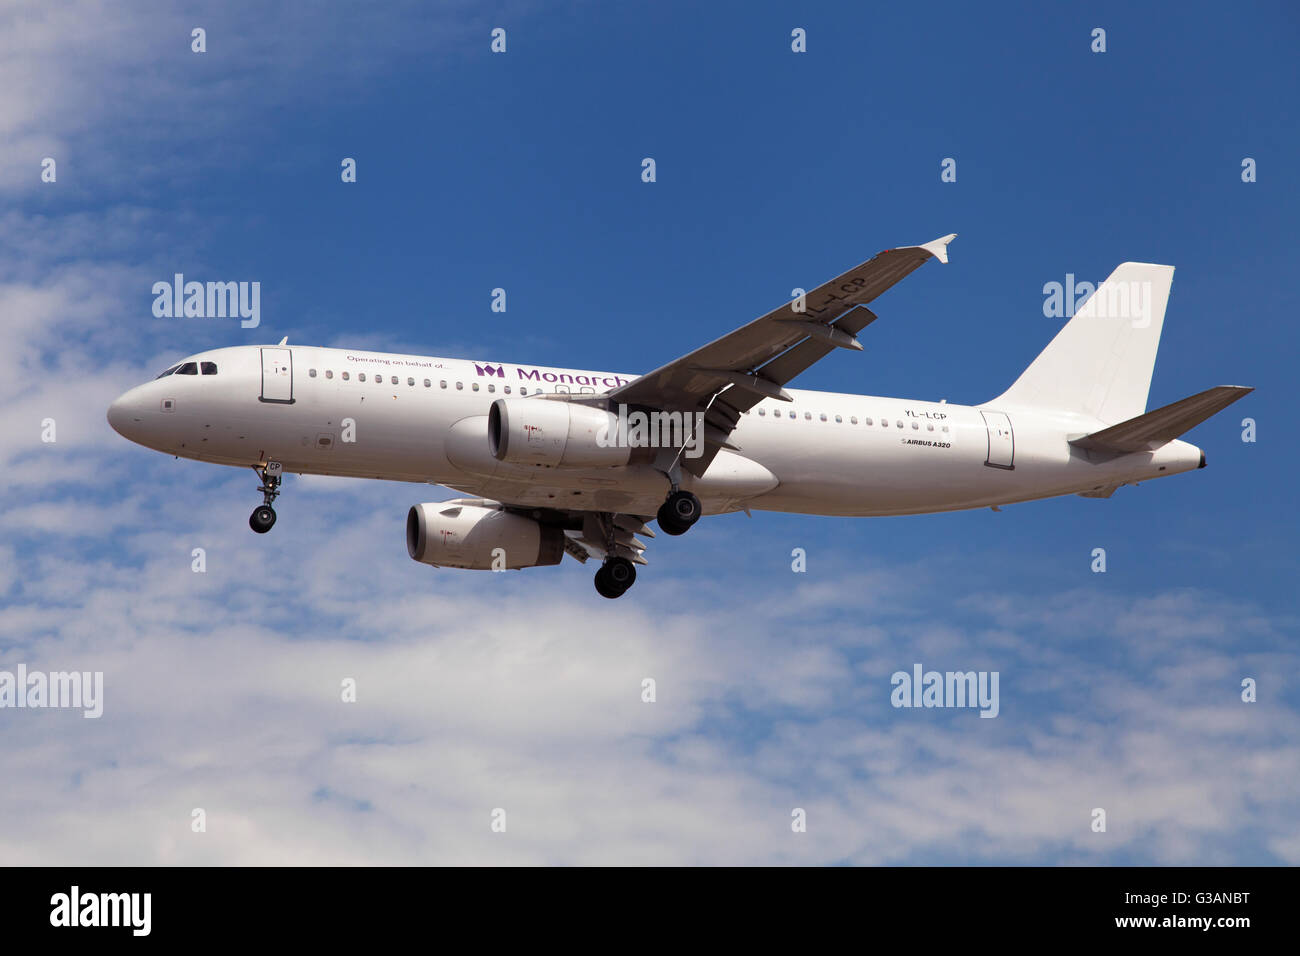 A Monarch Airlines Smartlynx Airbus A320-200 approaching to El Prat Airport in Barcelona, Spain. - Stock Image